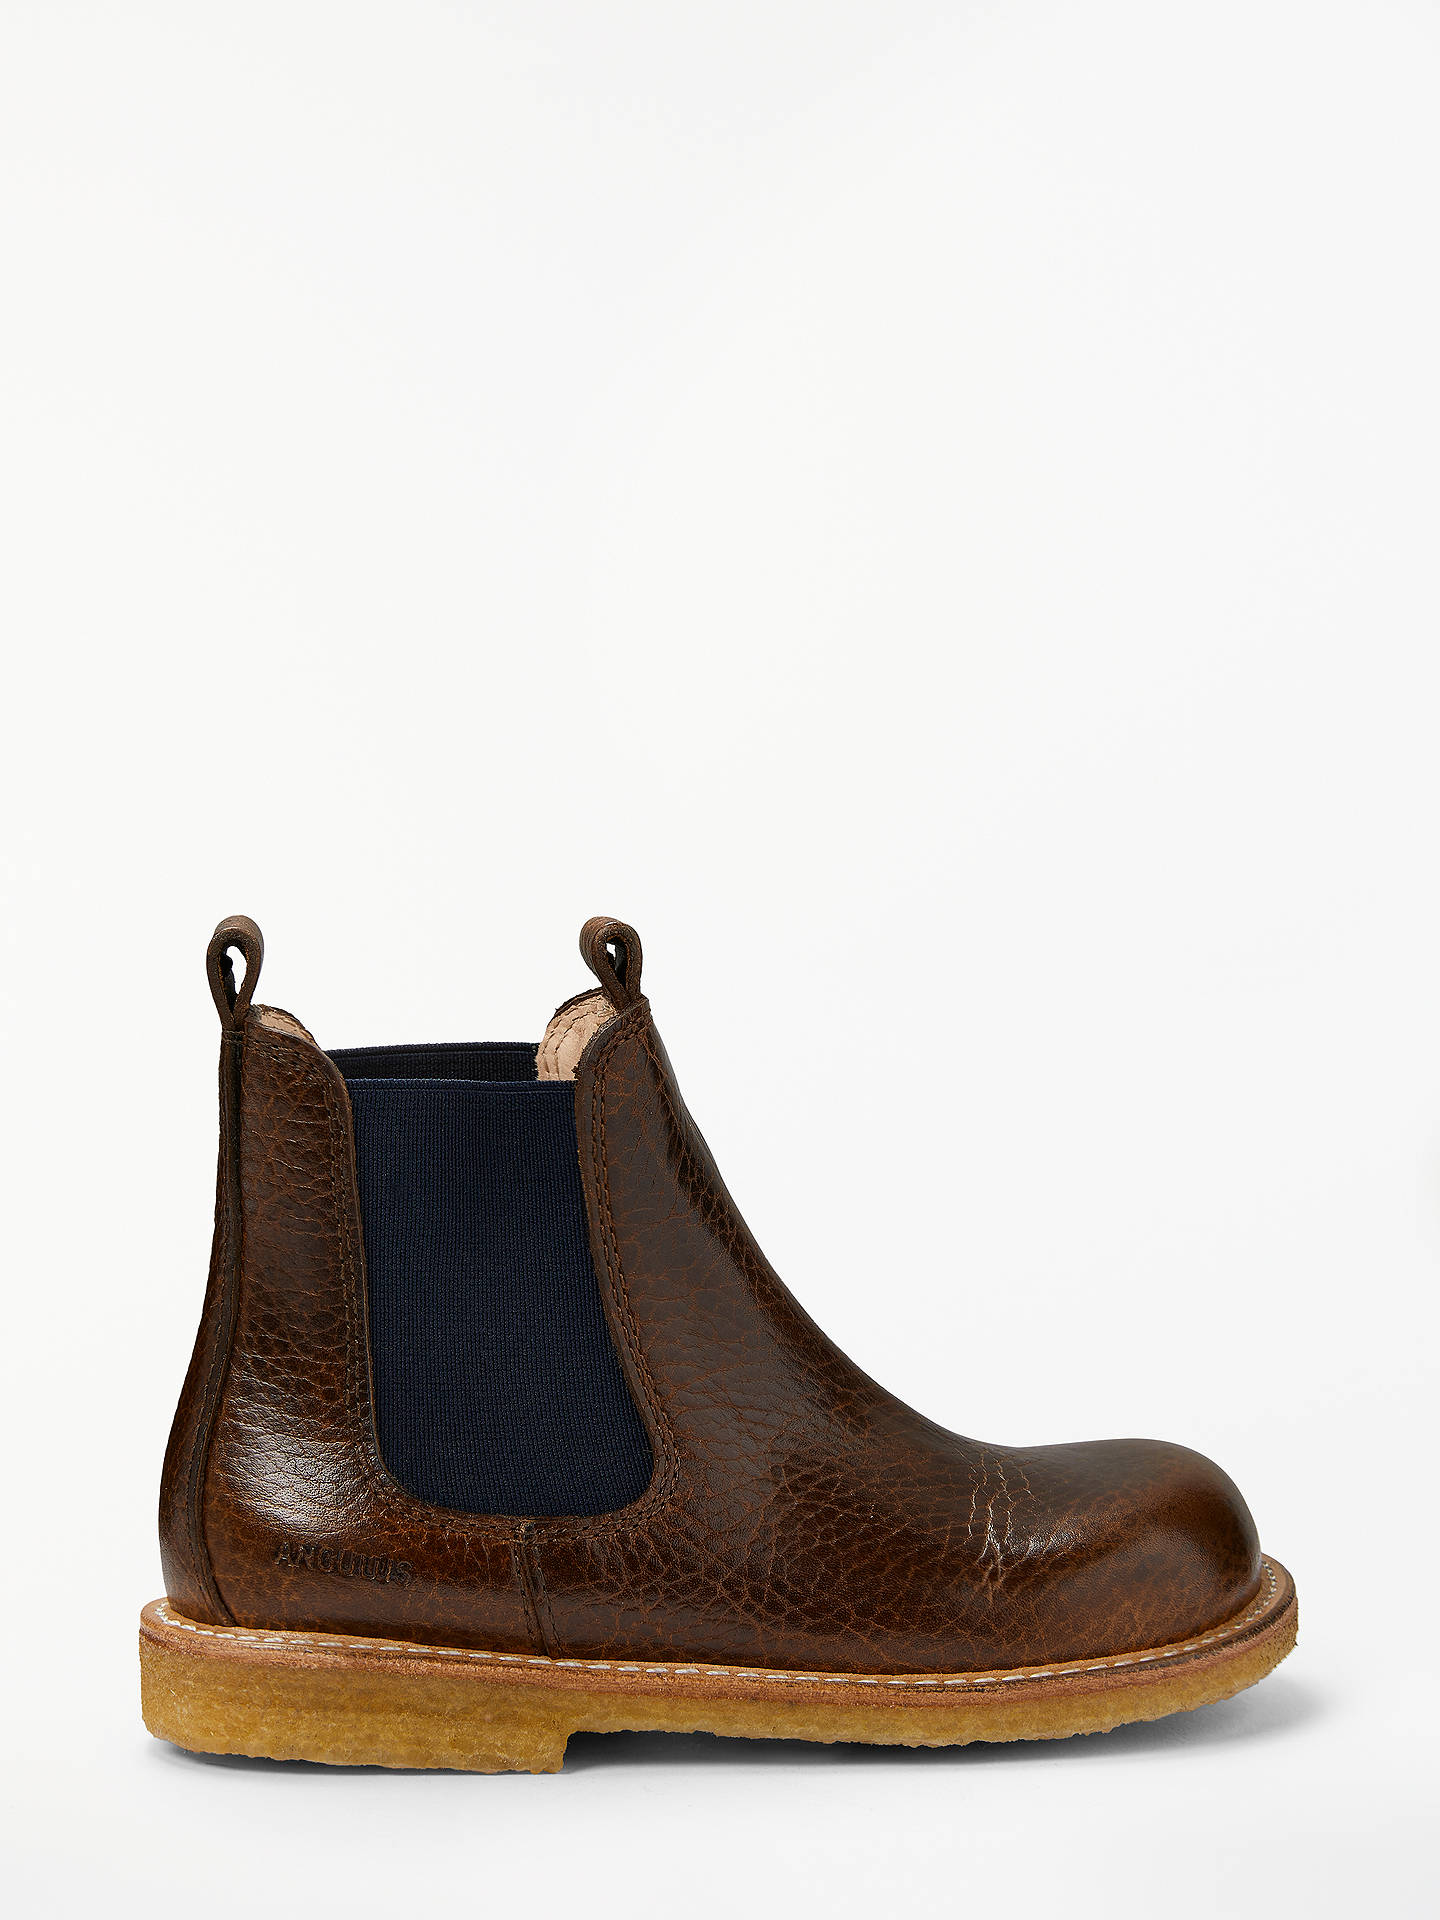 BuyANGULUS Children's Chelsea Boots, Brown, 35 Online at johnlewis.com